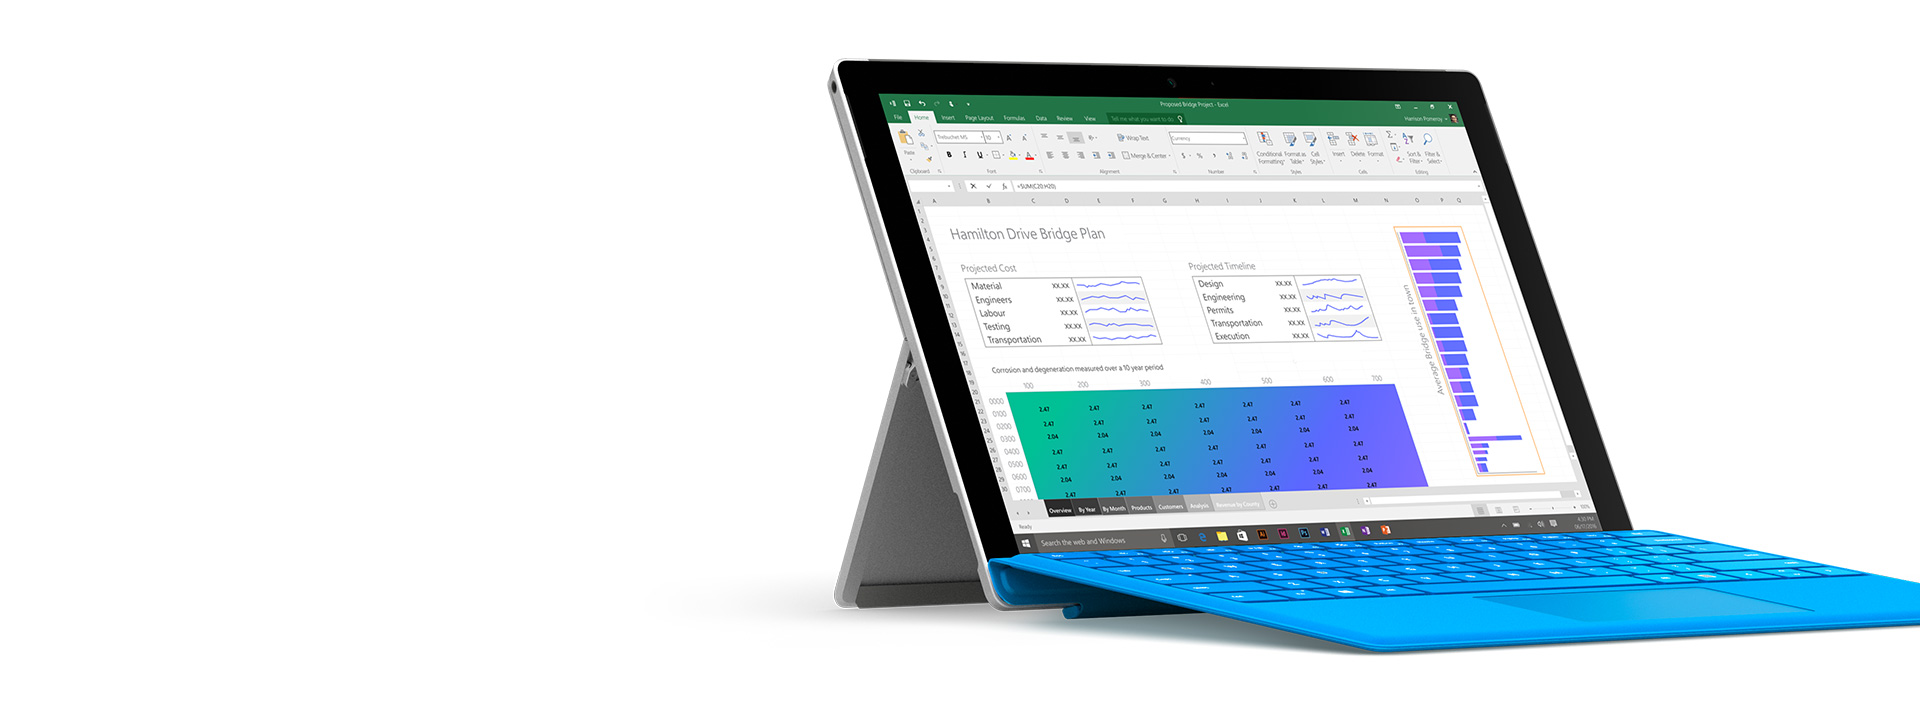 Surface Pro 4 with Office on screen